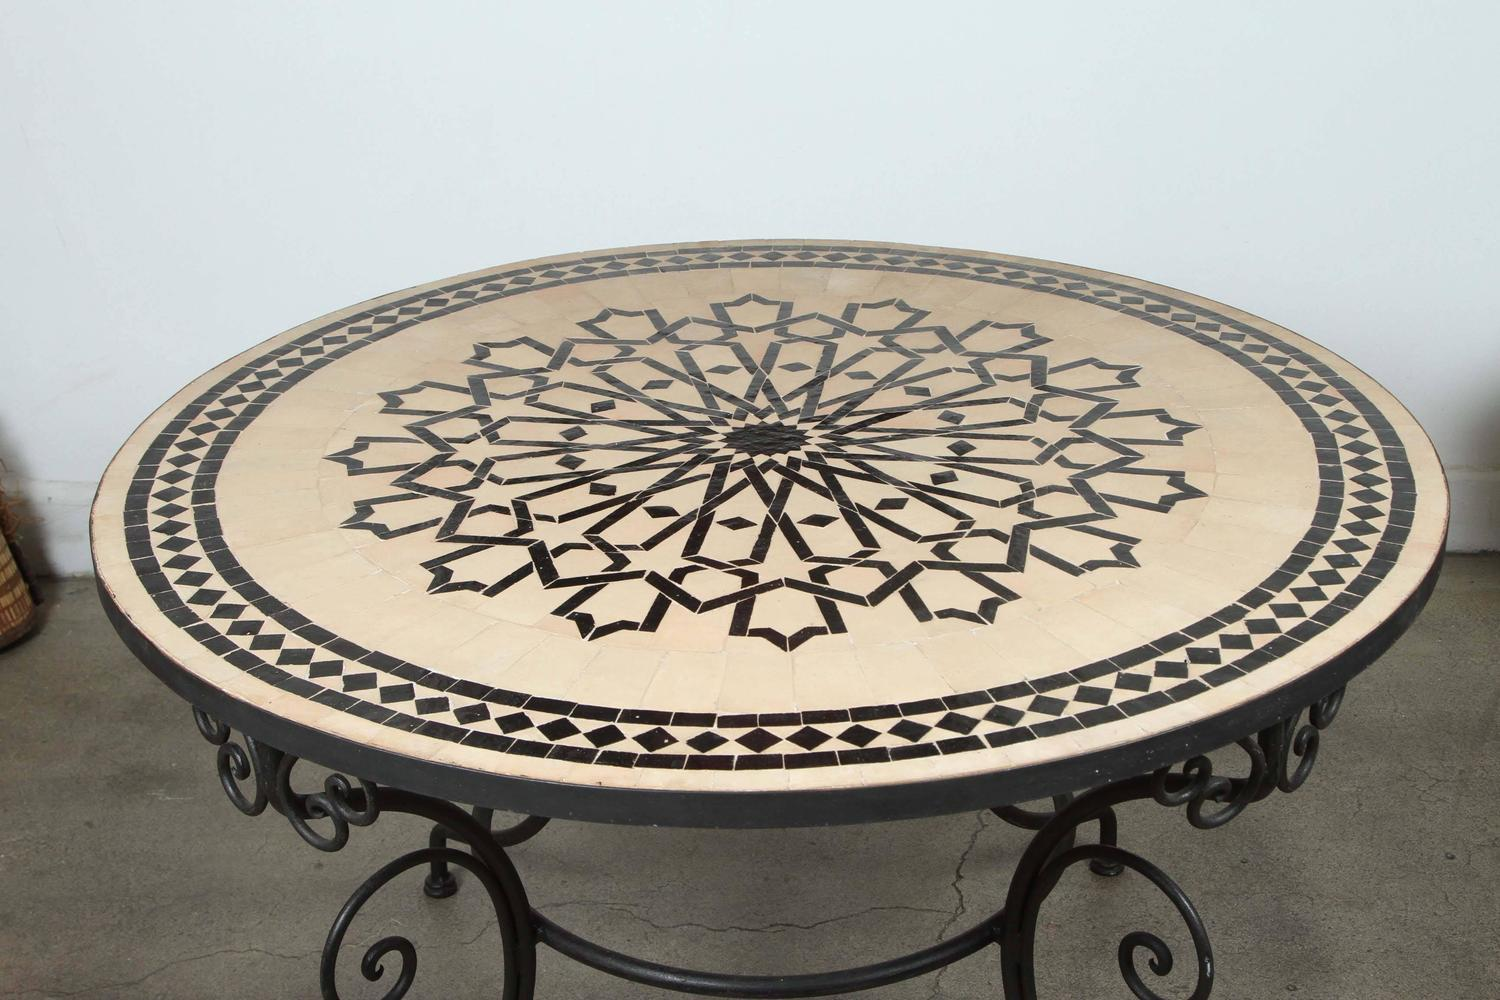 Moroccan Outdoor Round Mosaic Tile Dining Table On Iron Base 47 In For At 1stdibs